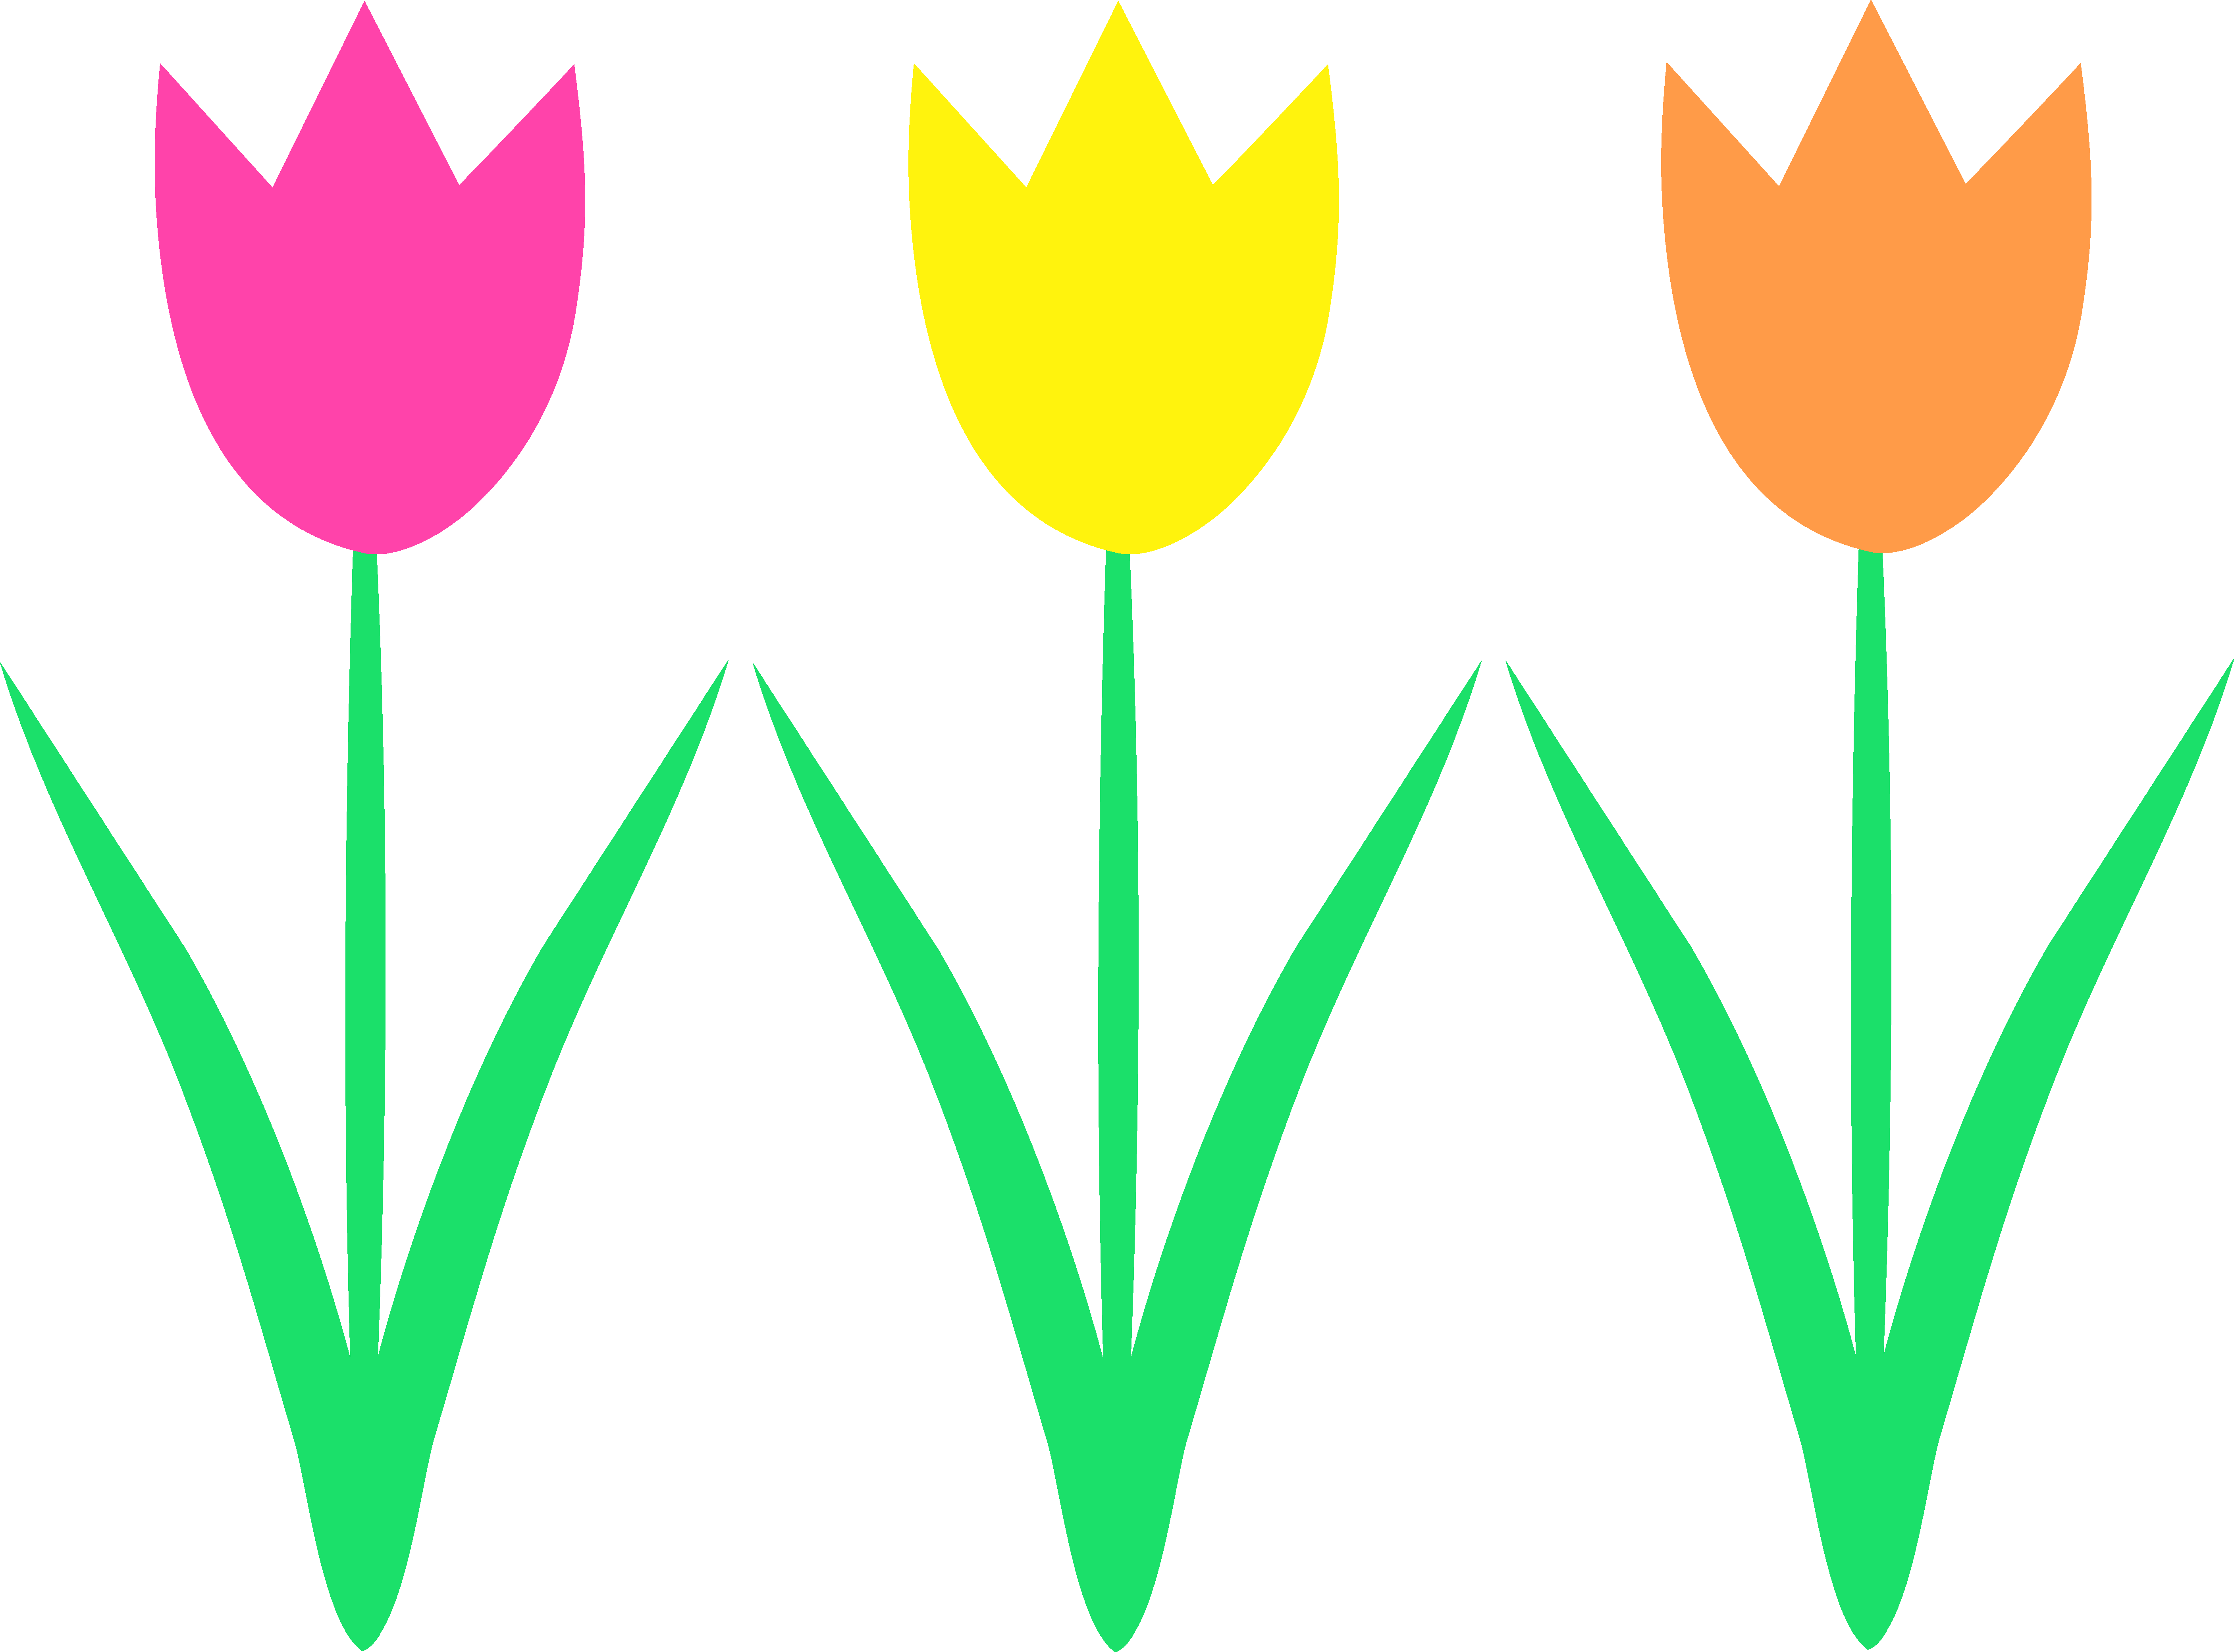 Clip Art Tulip Clip Art tulip clipart panda free images